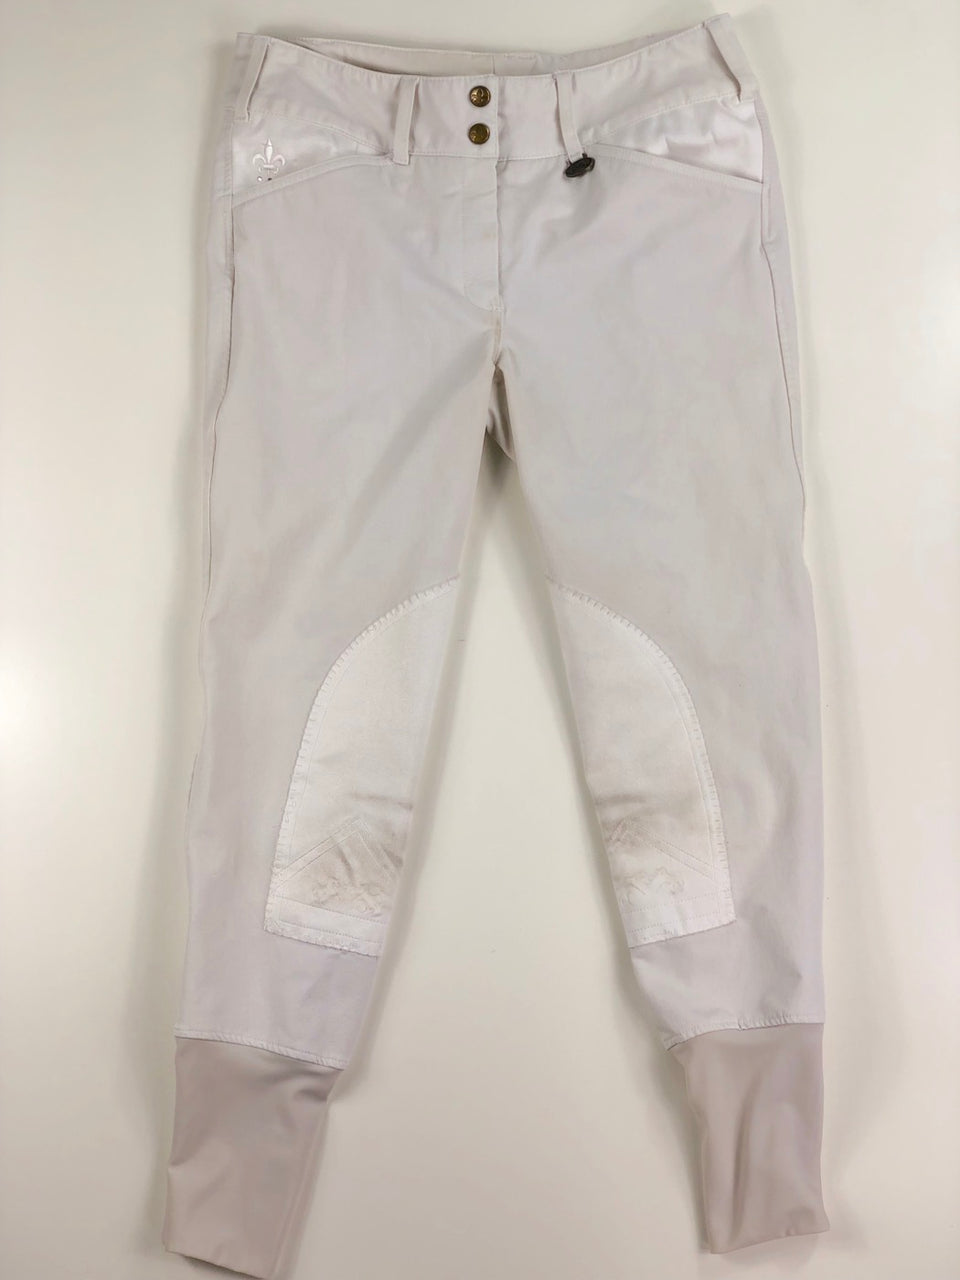 Equine Couture Debbie Stephens Knee Patch Breeches  in White - Women's 28